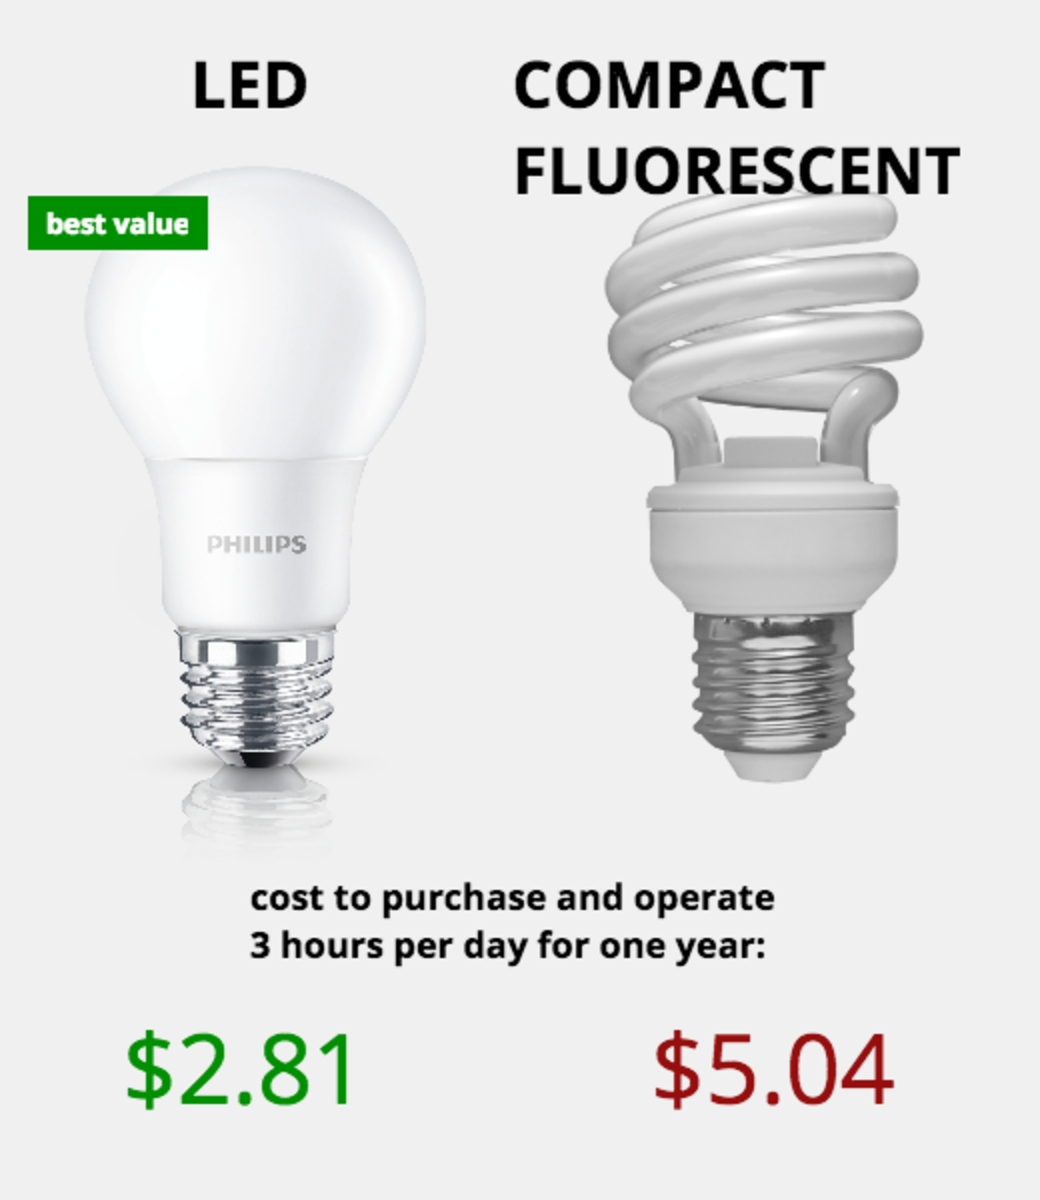 LED vs CFL comparison: while more efficient than Incandescent, the LED vs CFL cost comparison shows LED being half the overall cost after the first year.